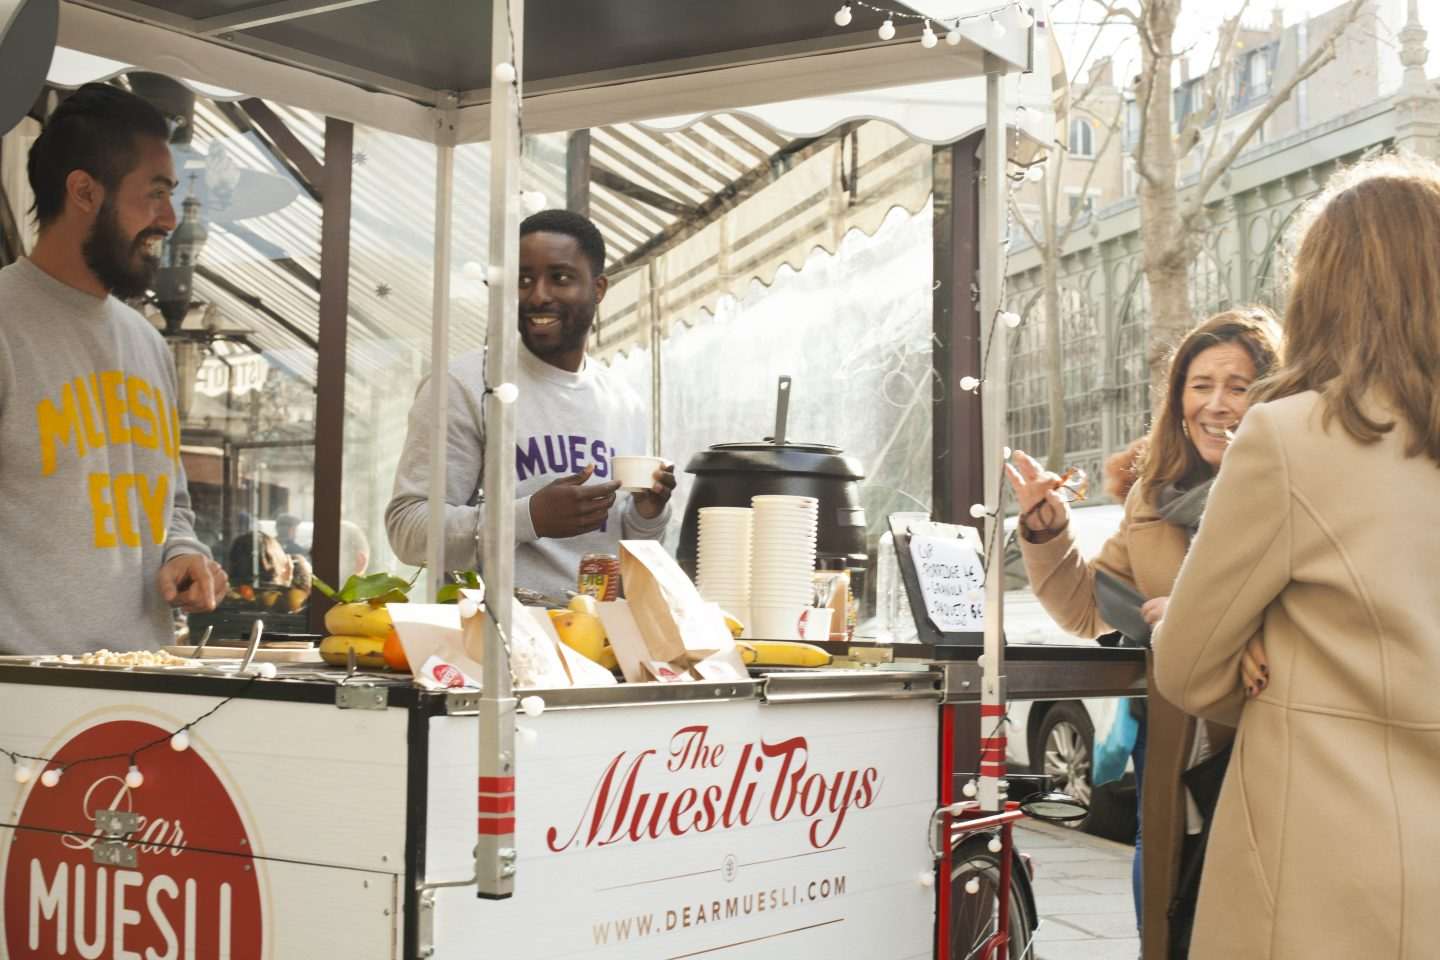 6 Questions with The Muesli Boys